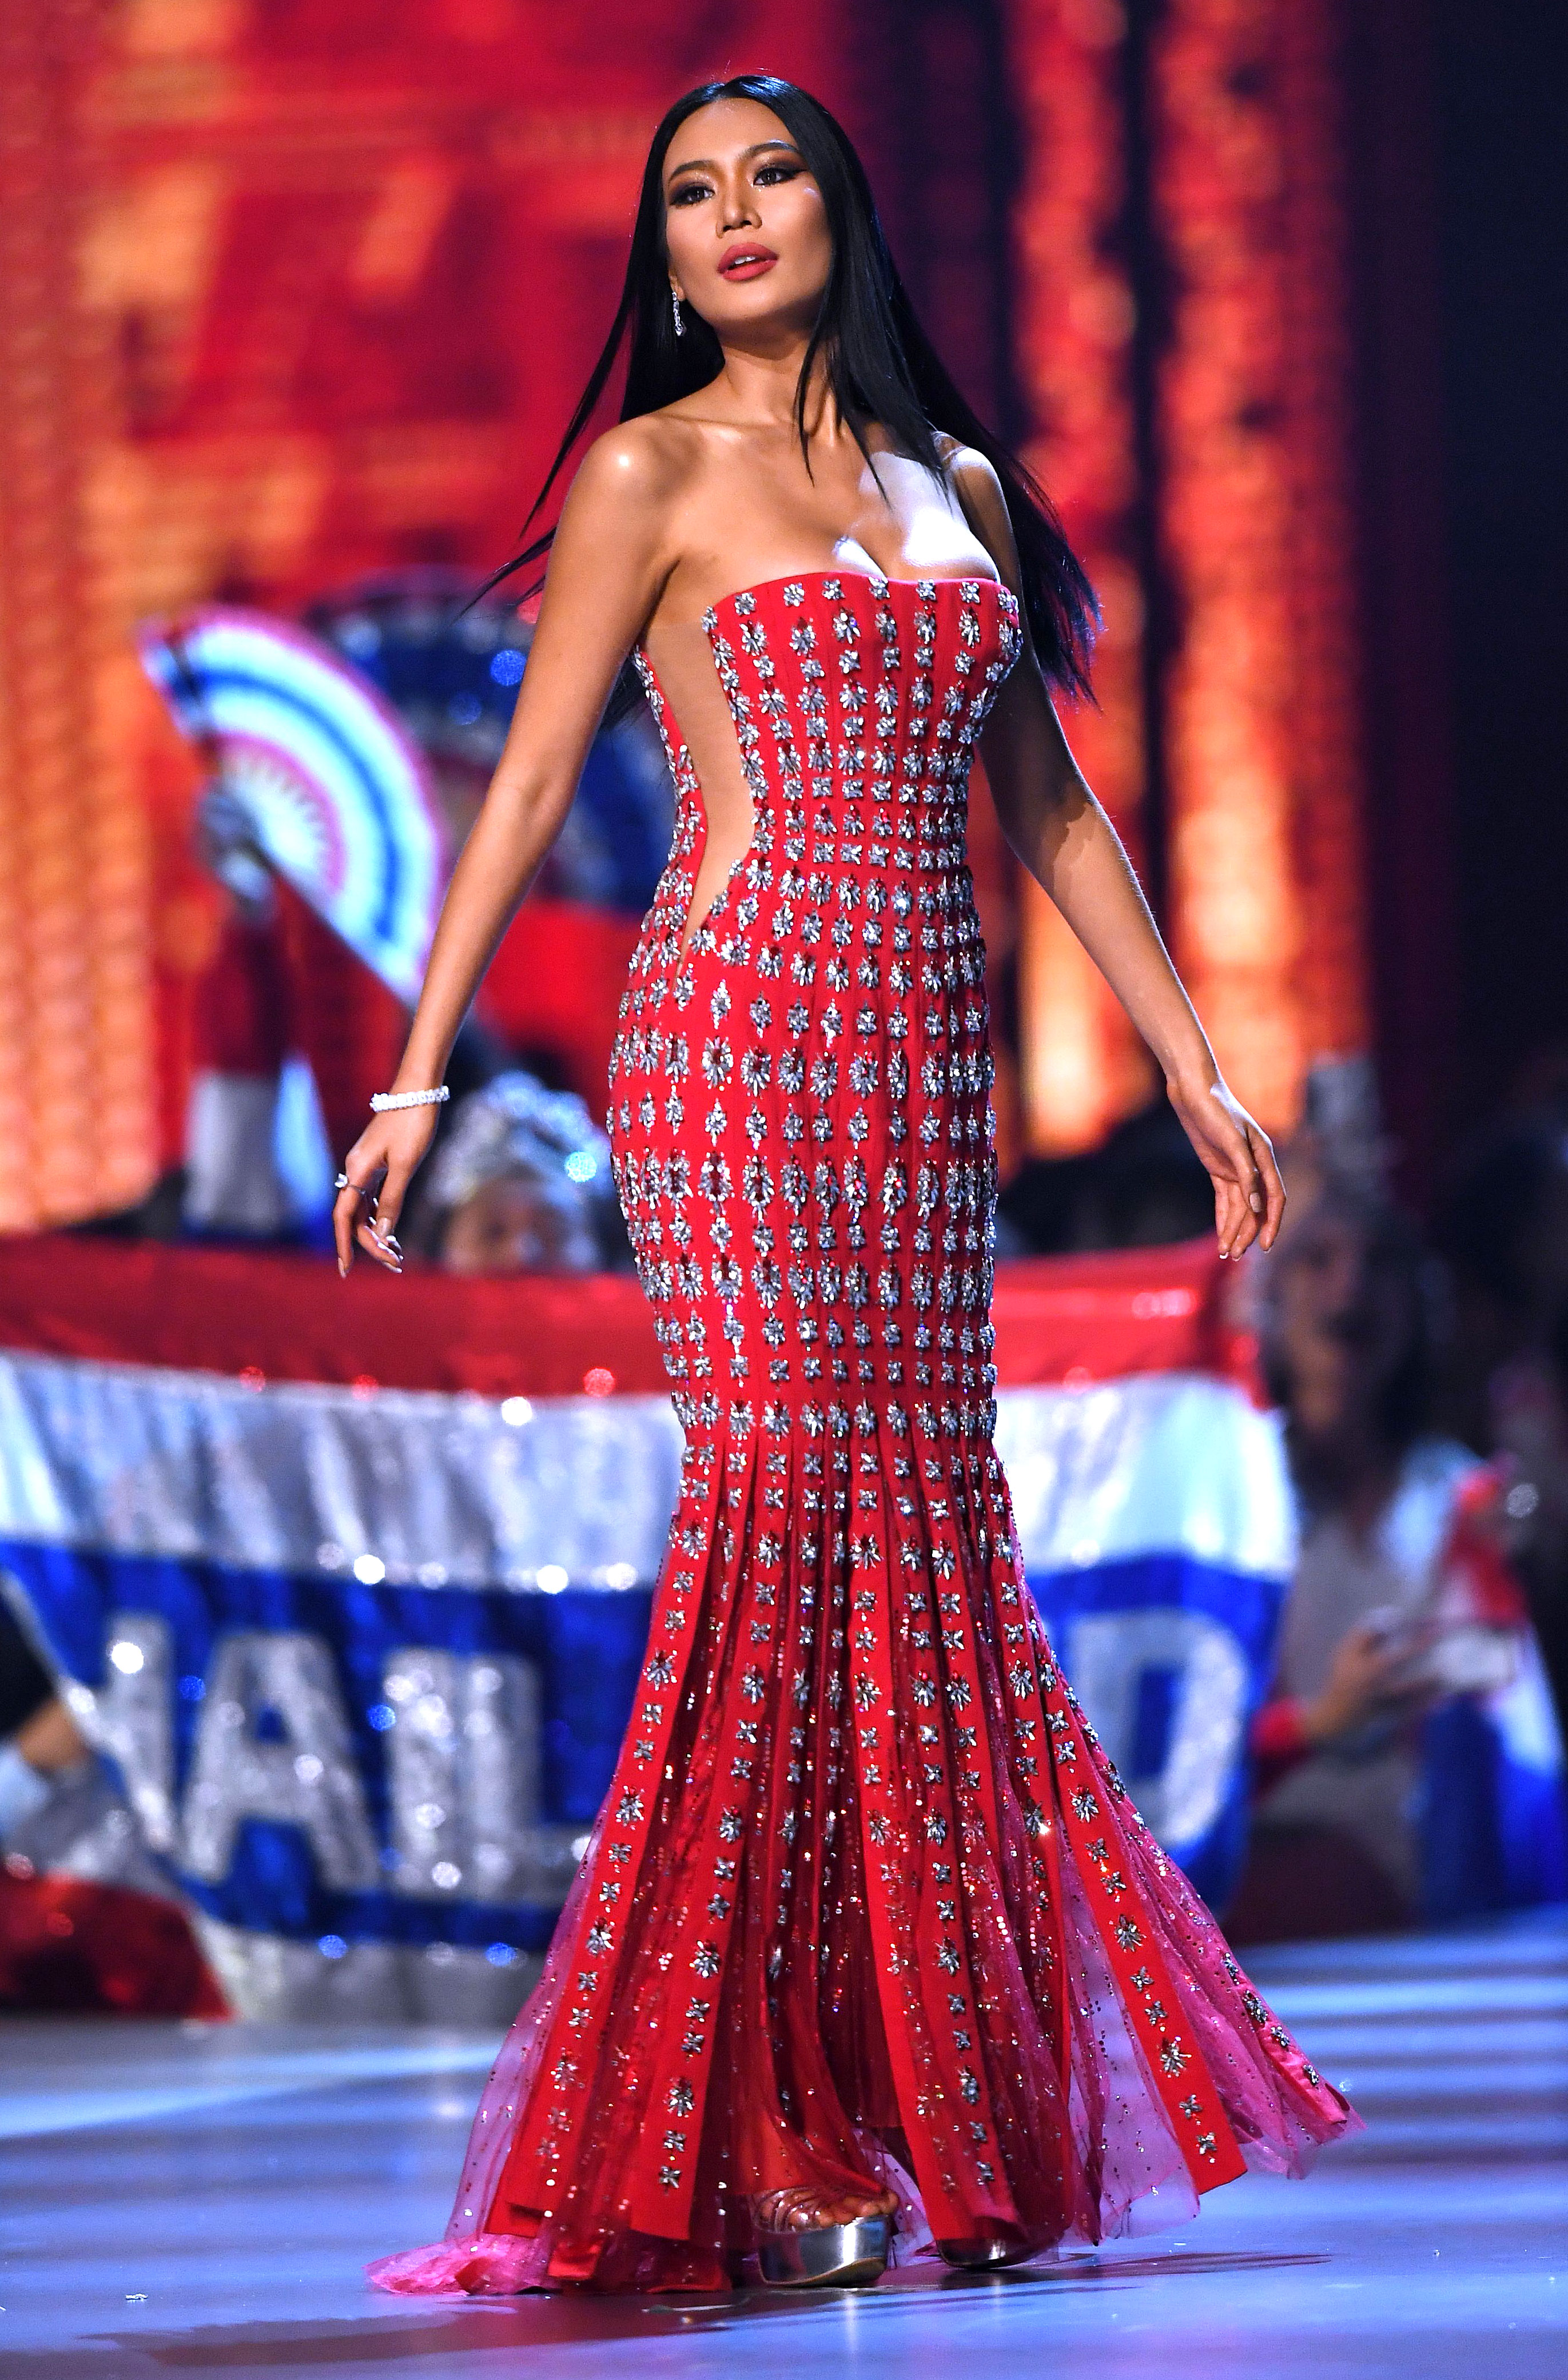 1-Miss-Thailand-Sophida-Kanchanarin--miss-universe - In a red strapless mermaid-cut gown.